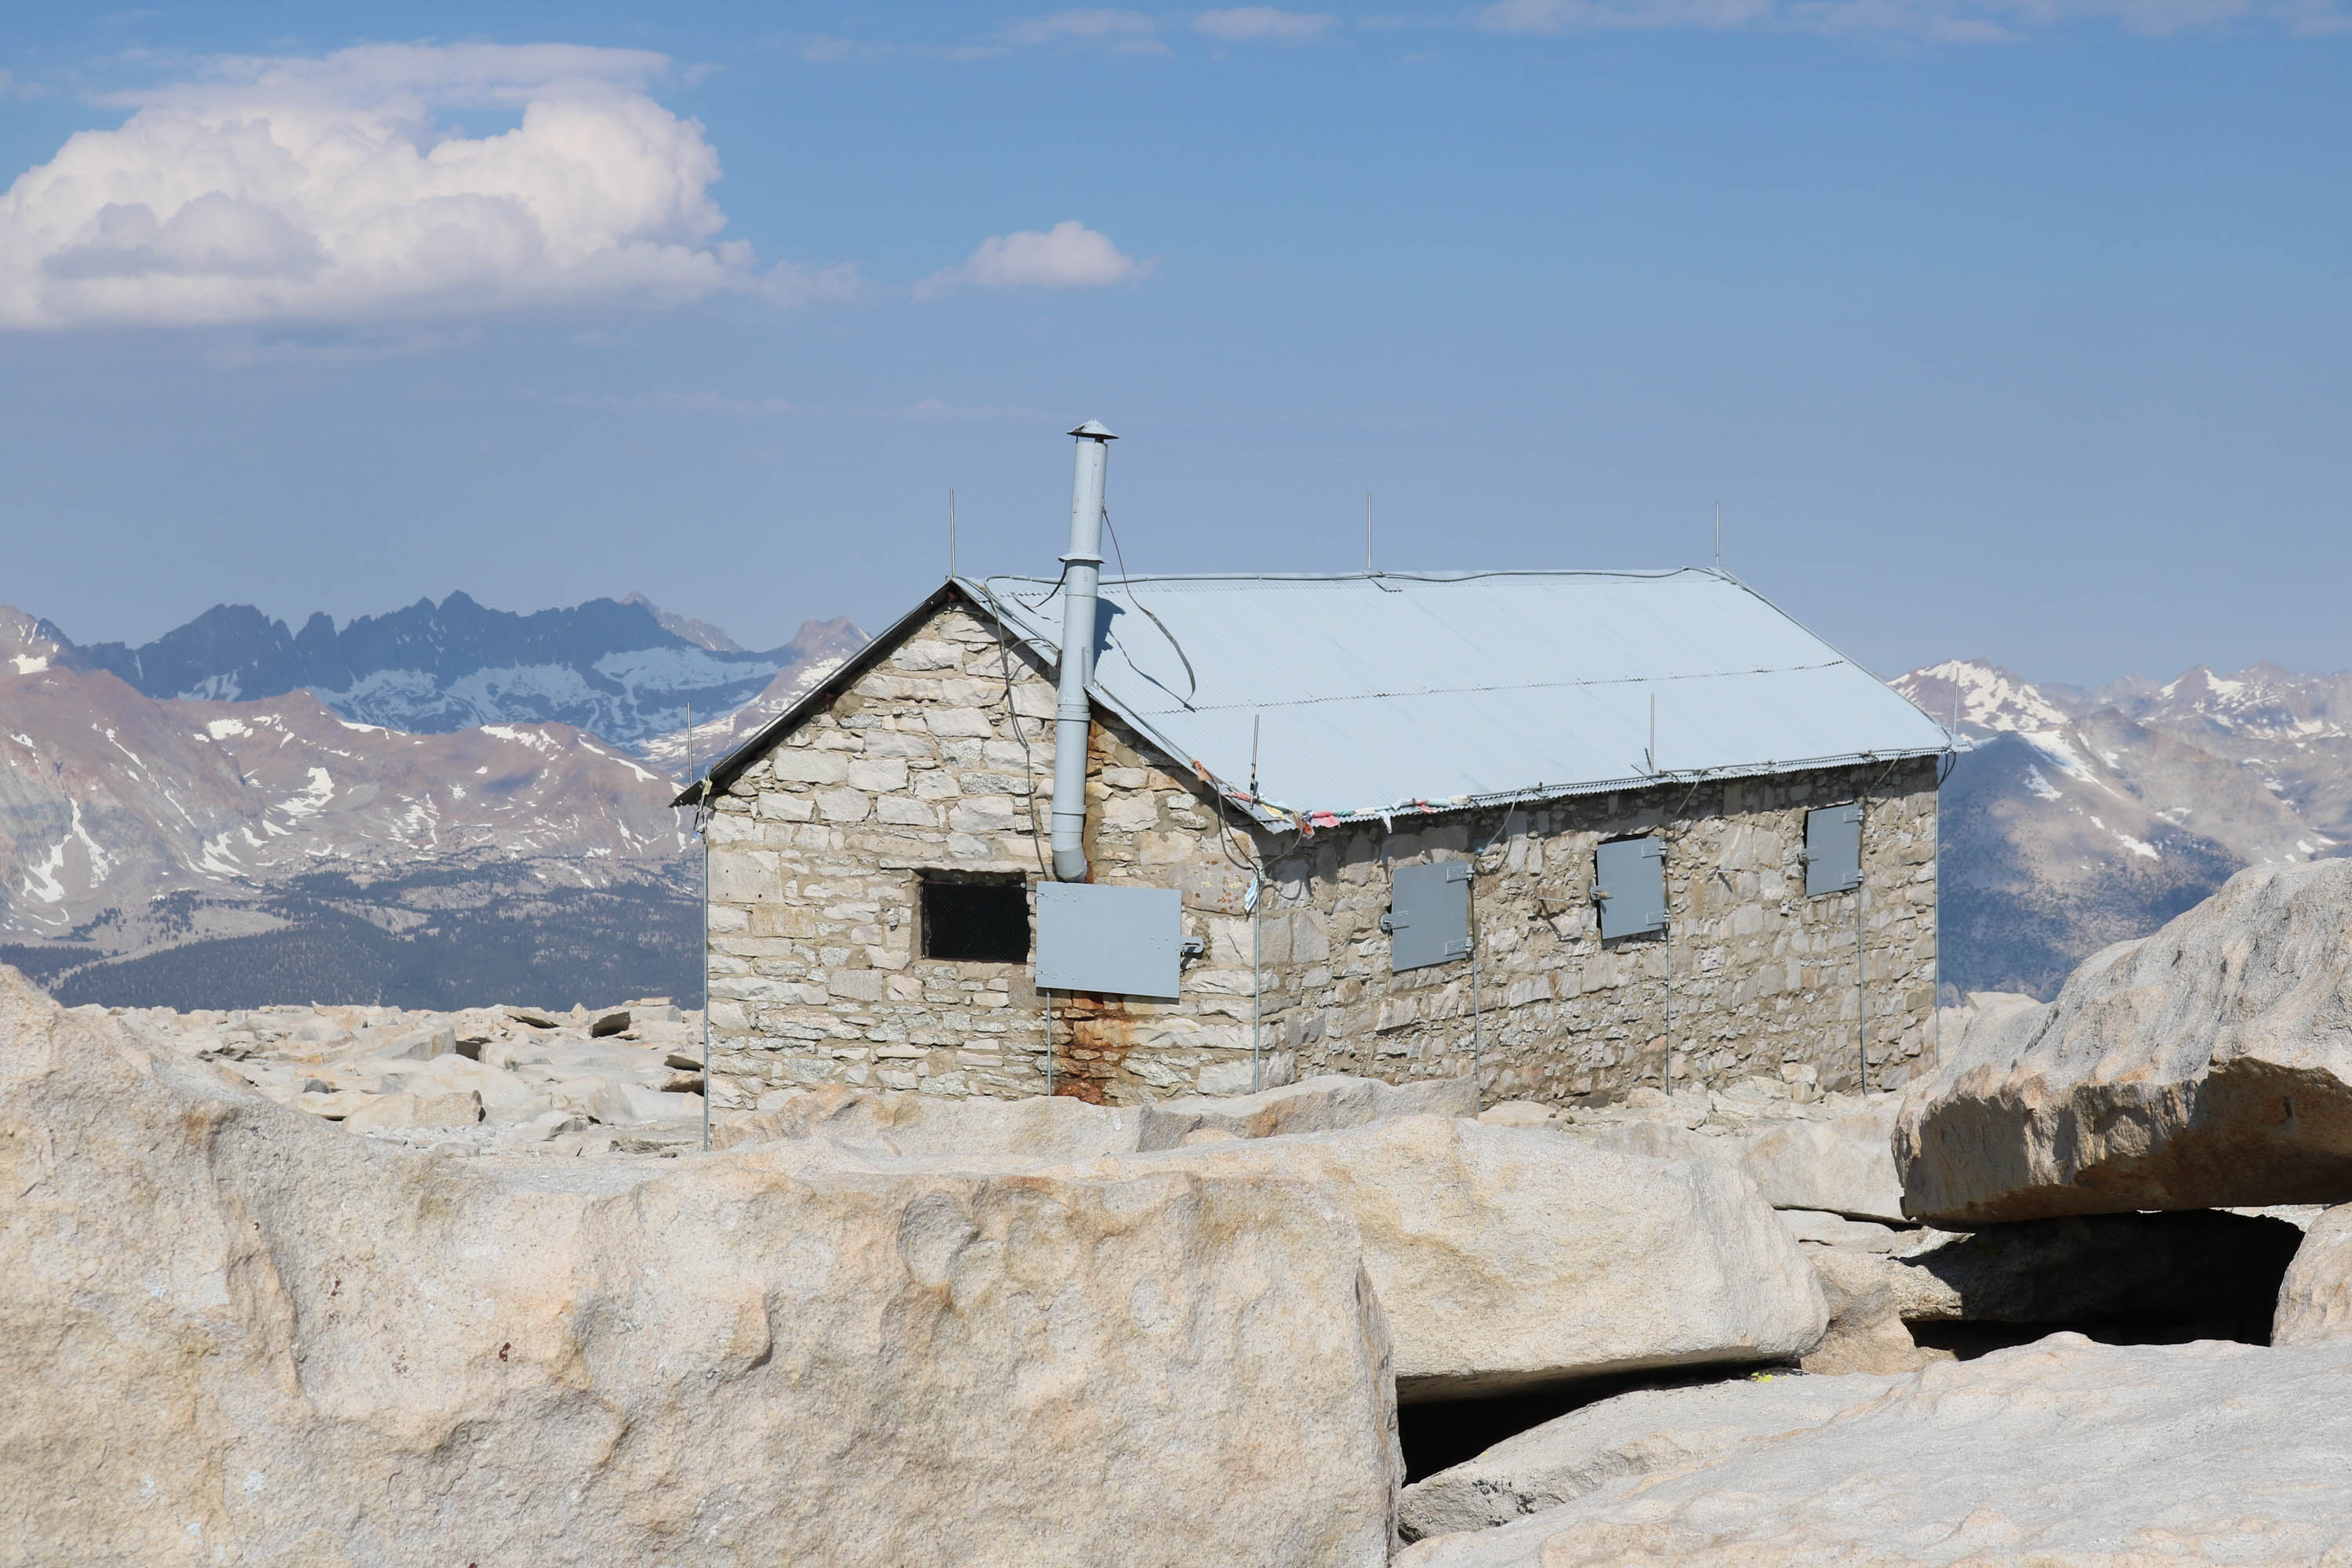 mt whitney summit shelter